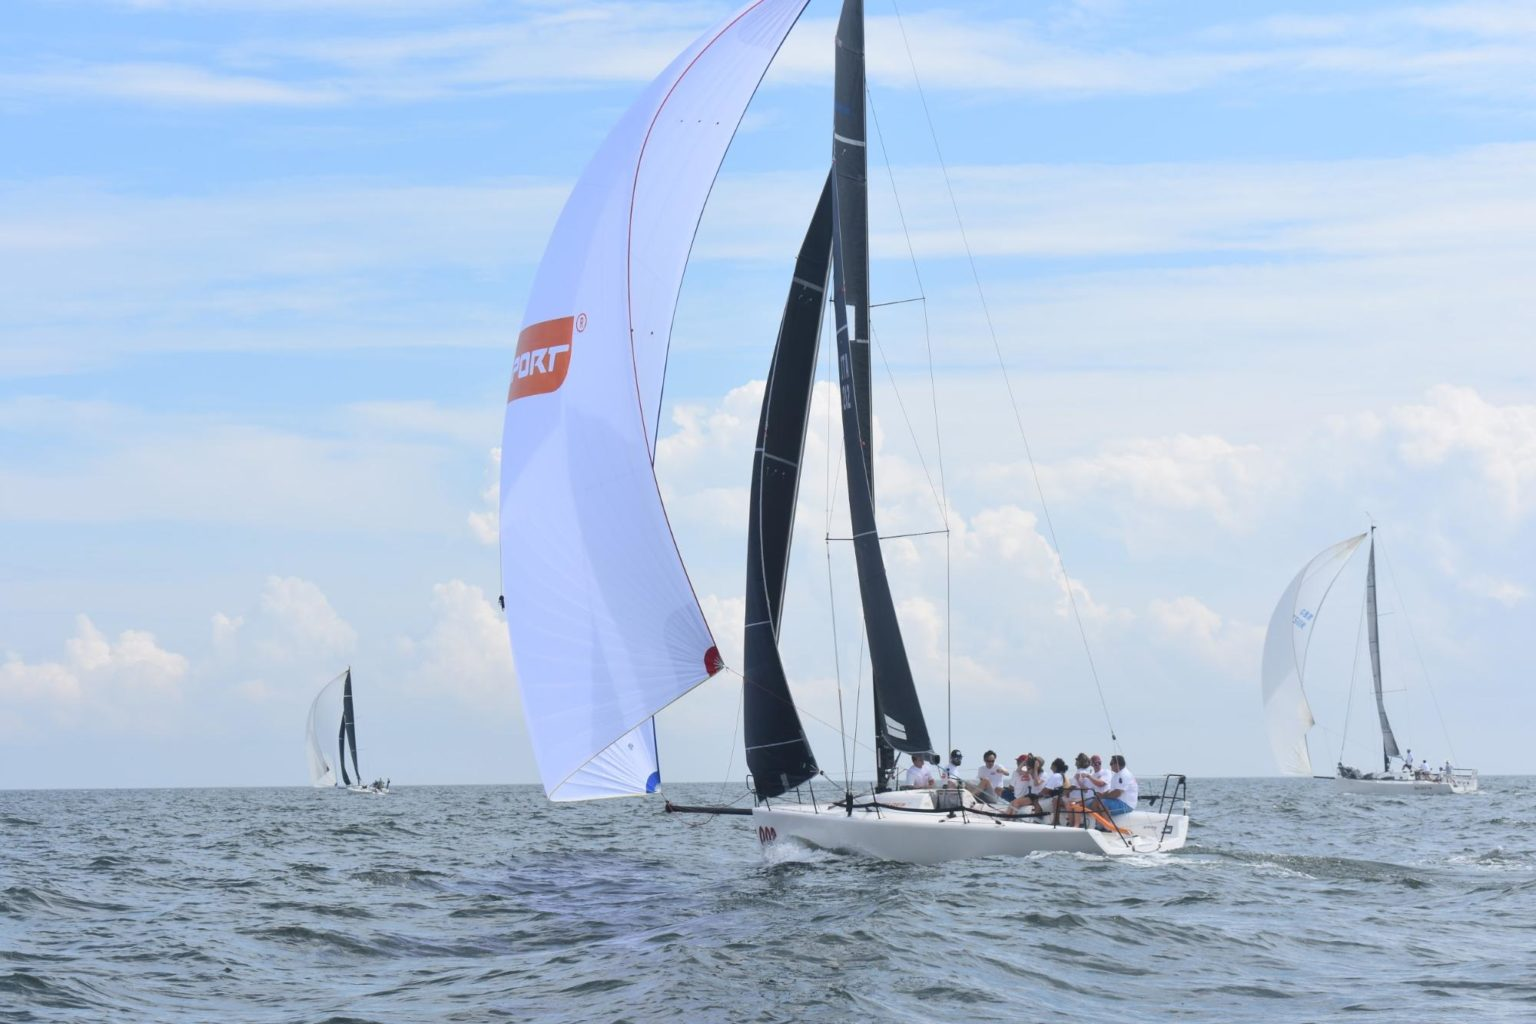 Best Sails for Club Racing North Sails